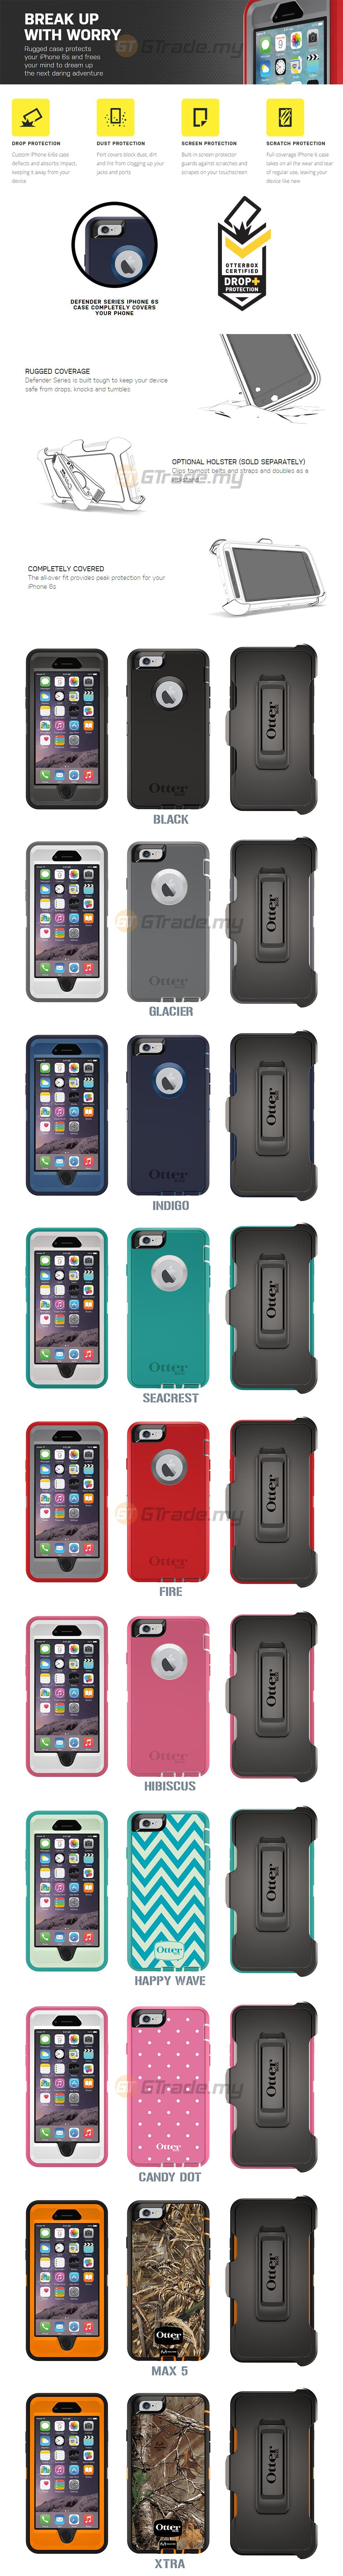 otterbox-defender-heavy-duty-tough-belt-clip-holster-stand-case-apple-iphone-6s-6-p